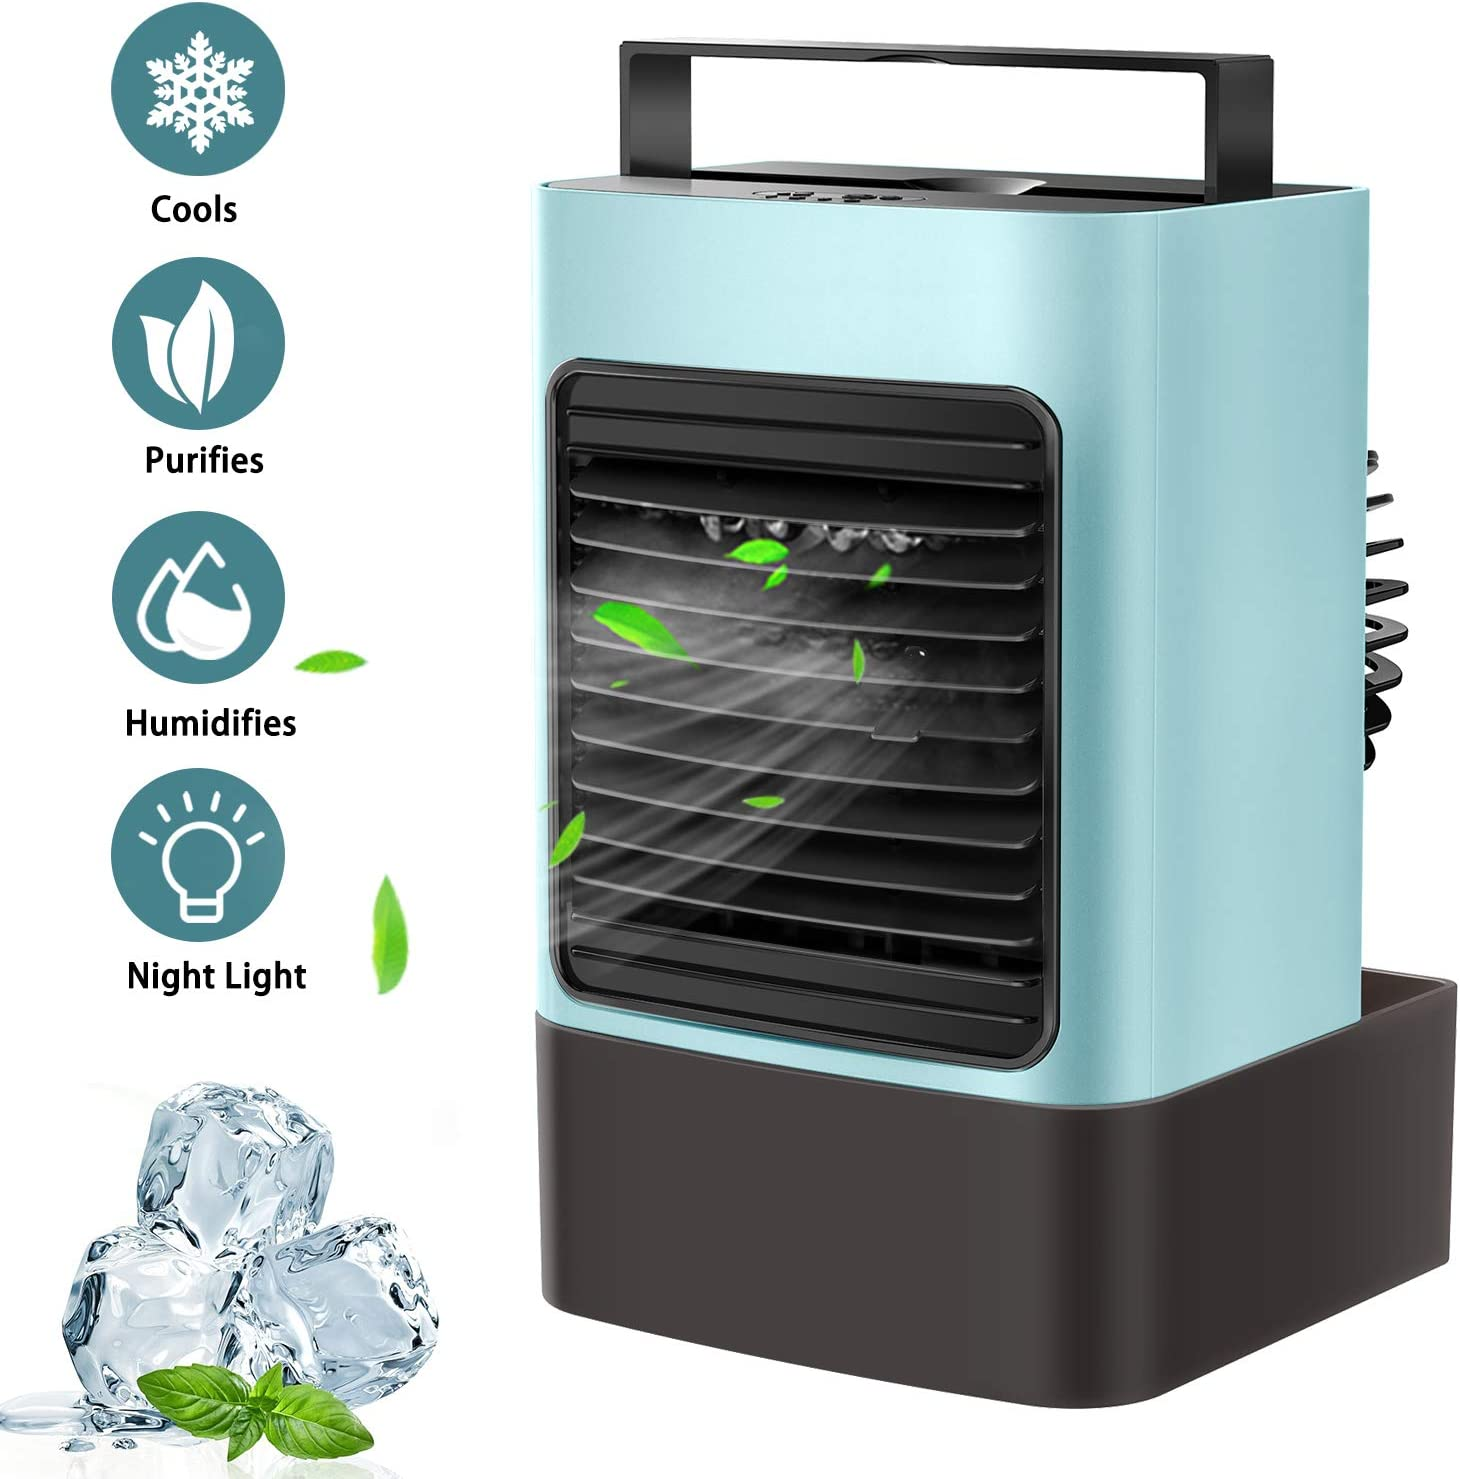 OVPPH Portable Air Conditioner, Personal Air Cooler Fan Mini Evaporative Cooler Desk Table Fan, Quiet Air Circulator Humidifier Misting Fan with 3 Speeds for Home Bedroom Office (Blue)